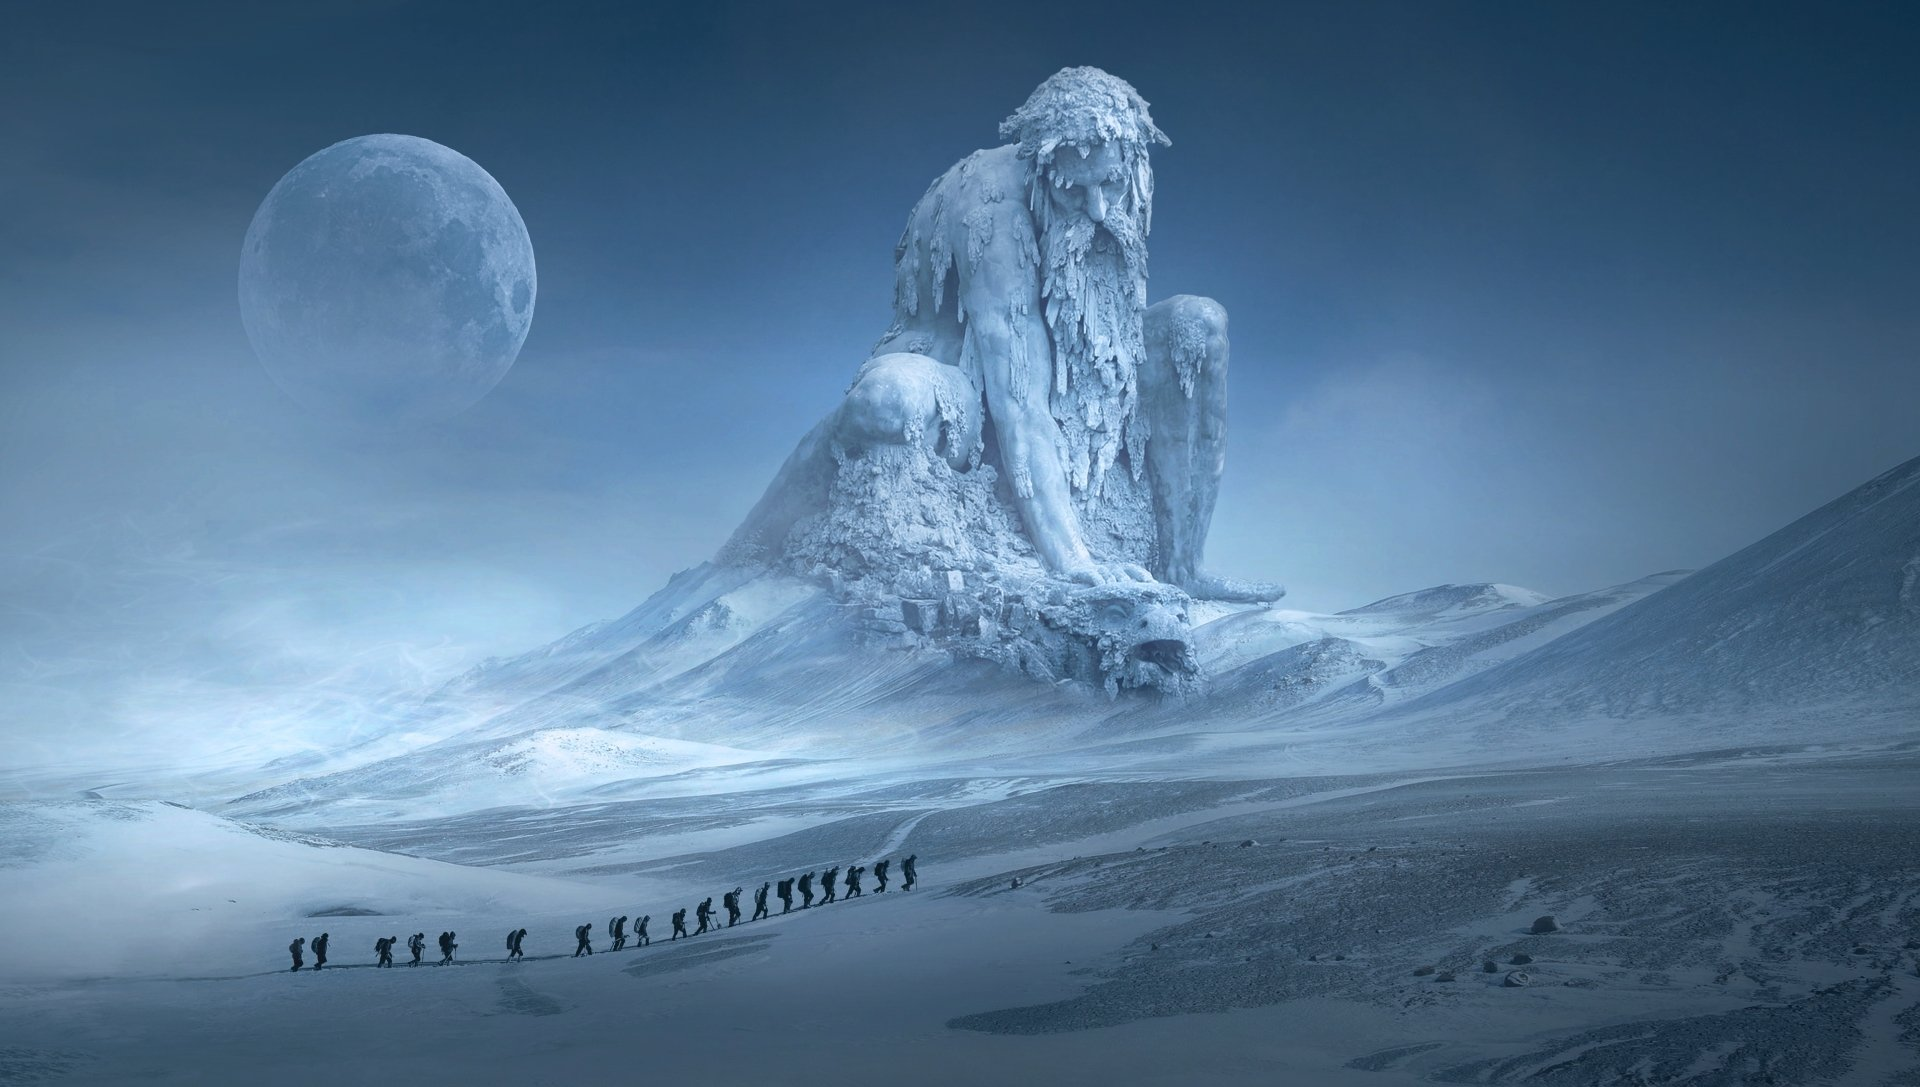 Fantasy - Landscape  Adventure Hiking Winter Statue Moon Mountain People Snow Photoshop Wallpaper